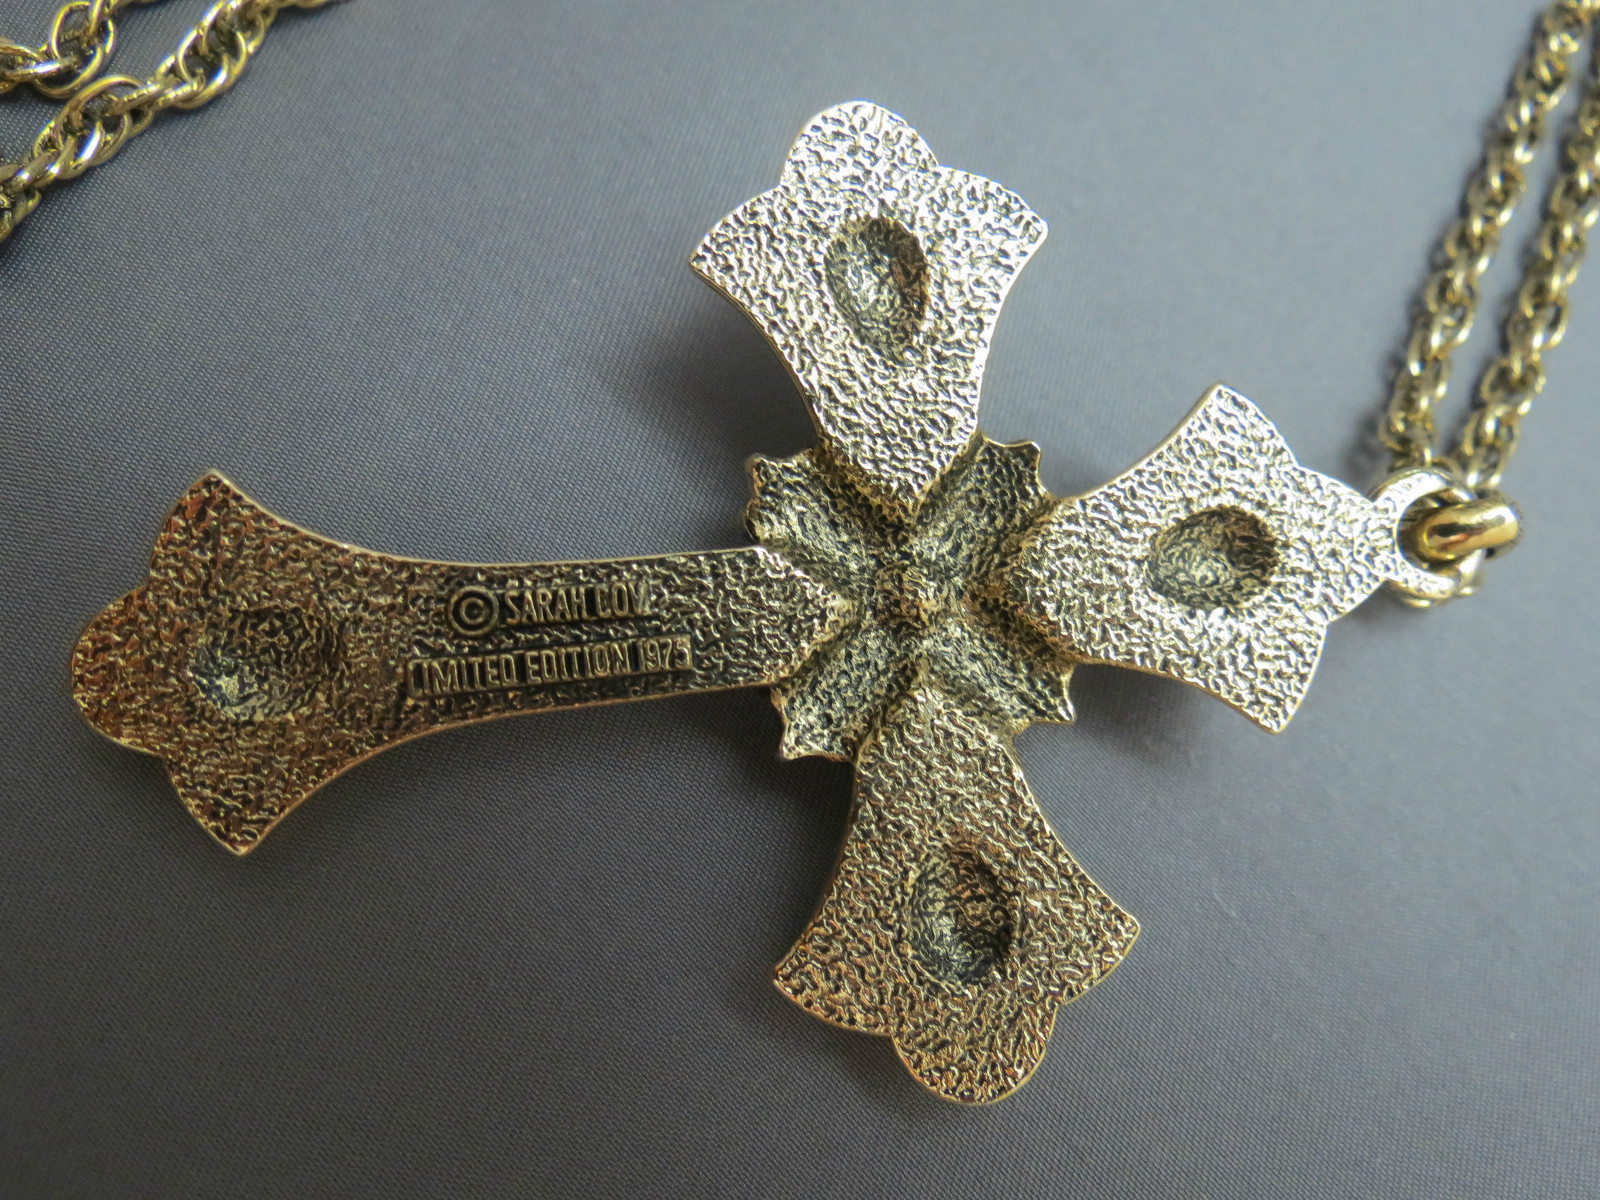 1975 Limited Edition Sarah Coventry Necklace Cross Pendant Antiqued Gold Tone